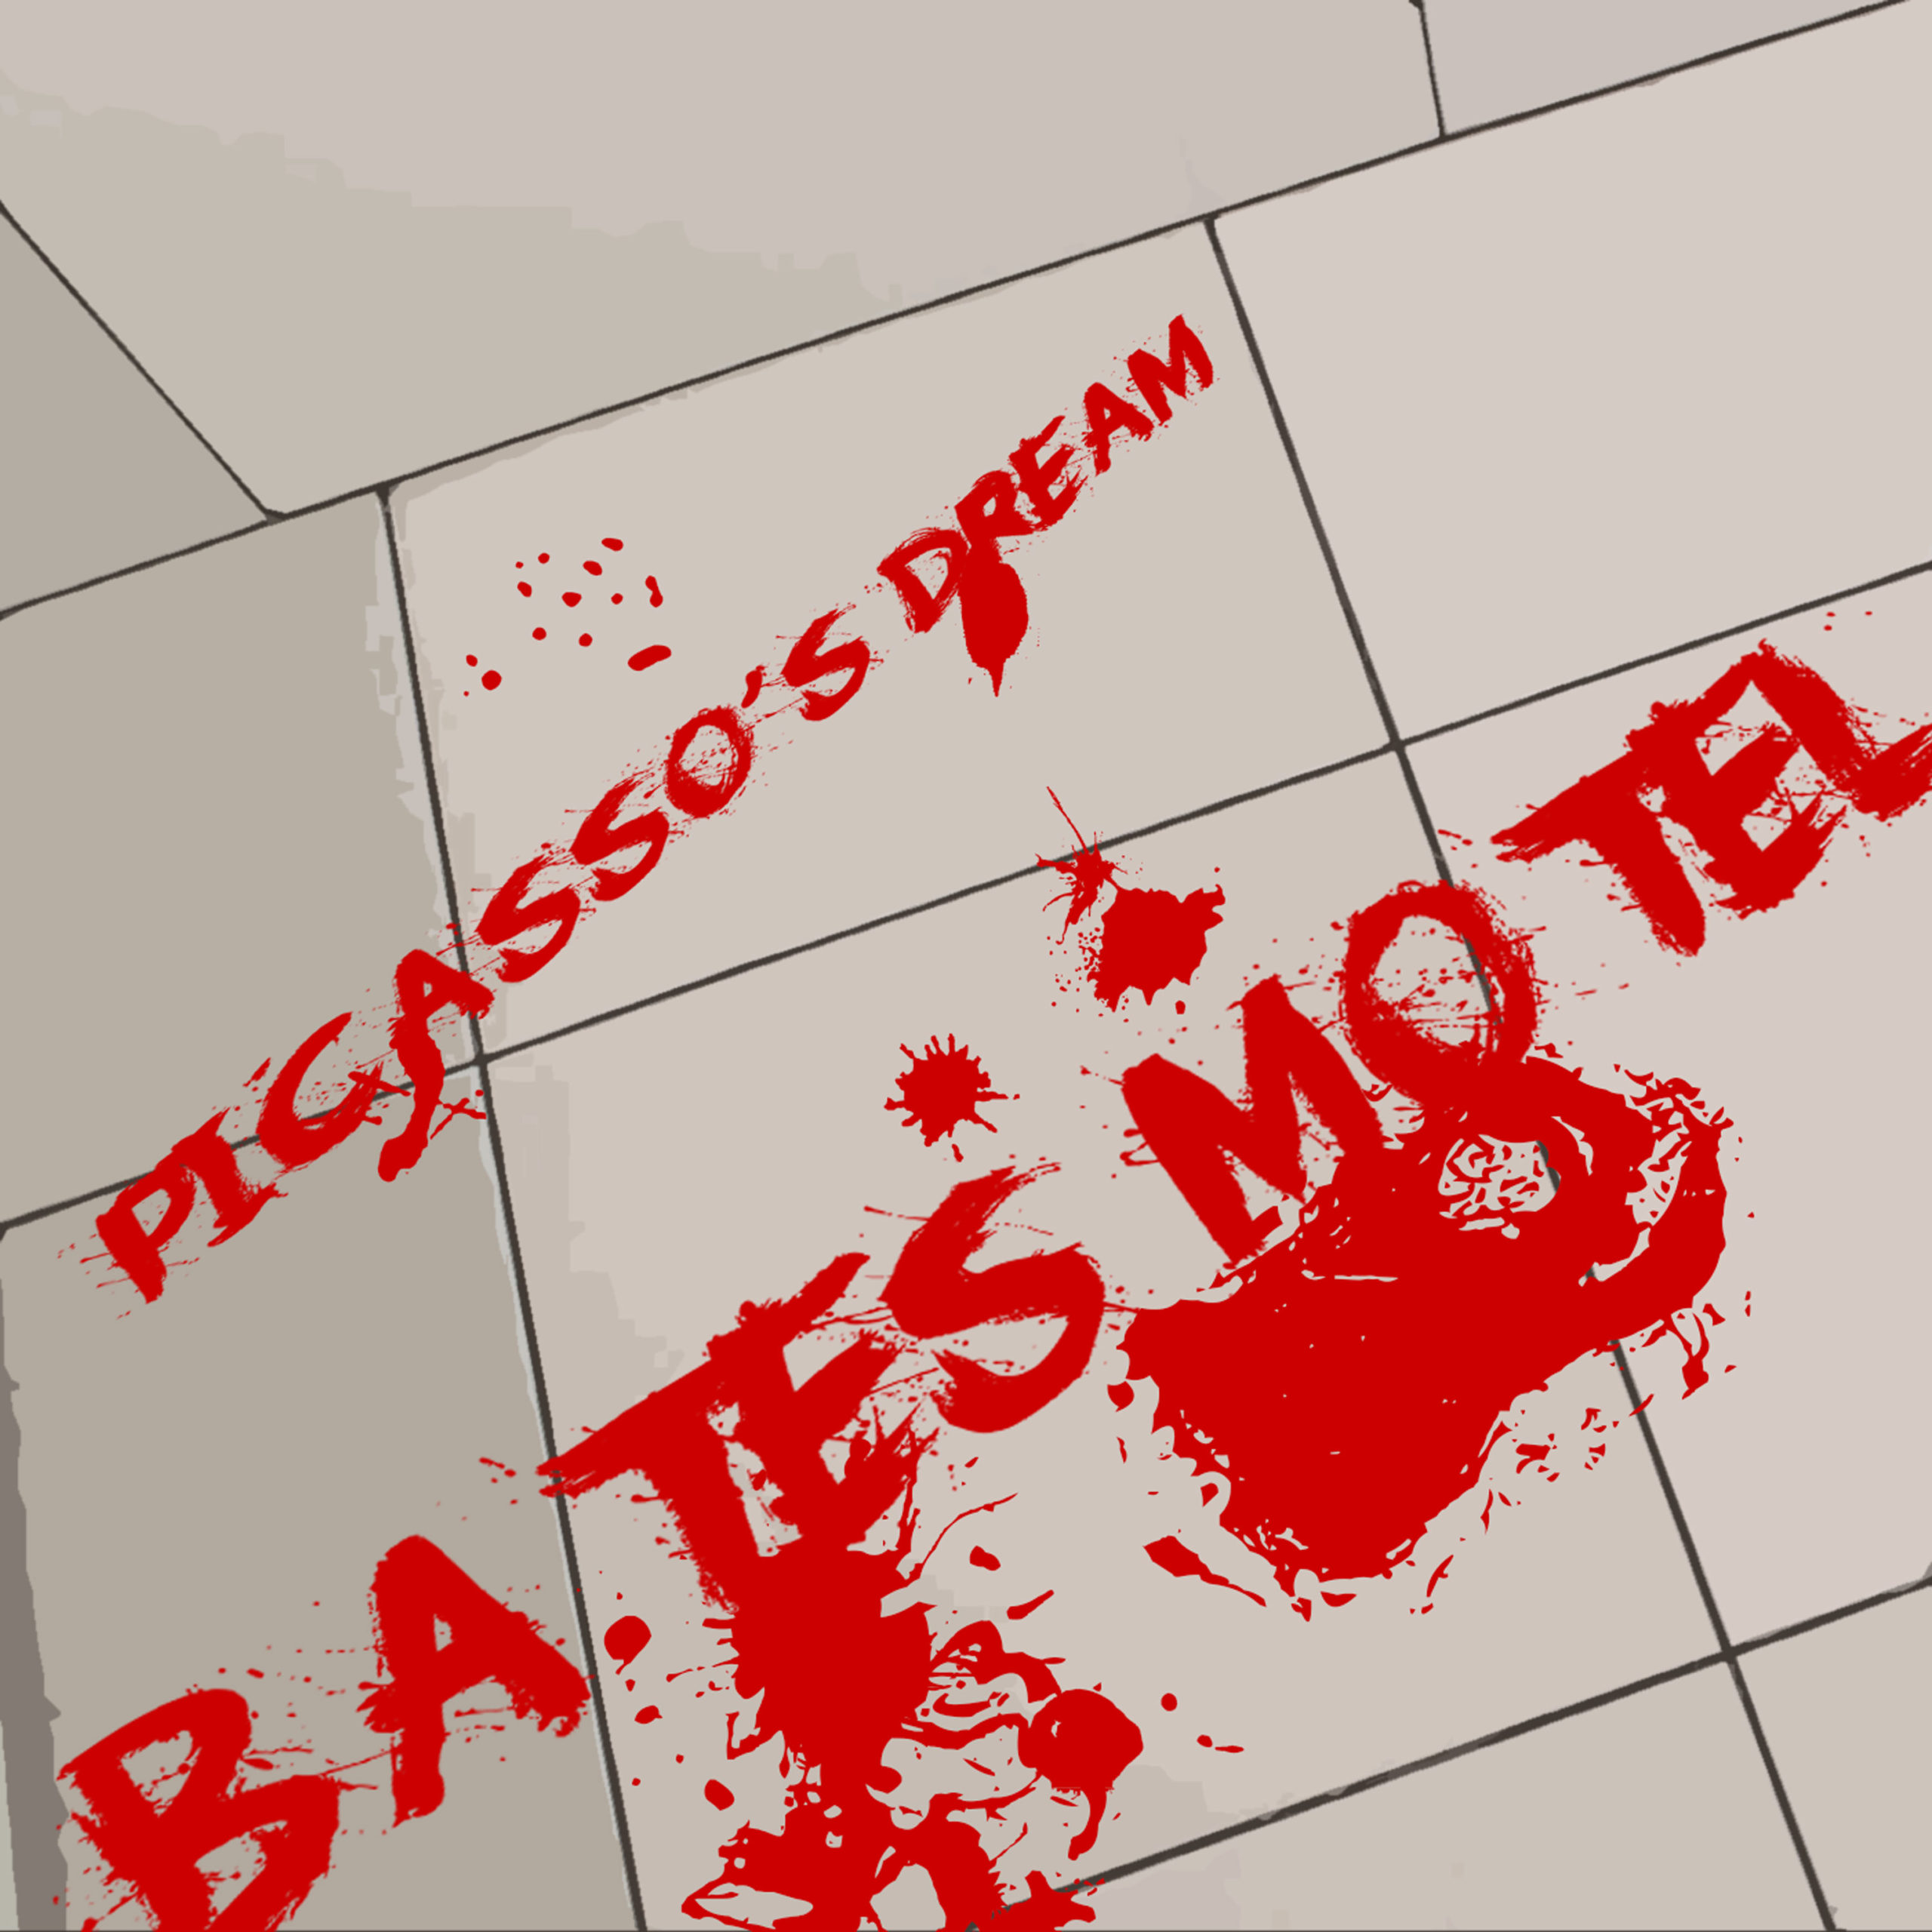 Progressive Rock - Picasso's Dream - Bates Motel